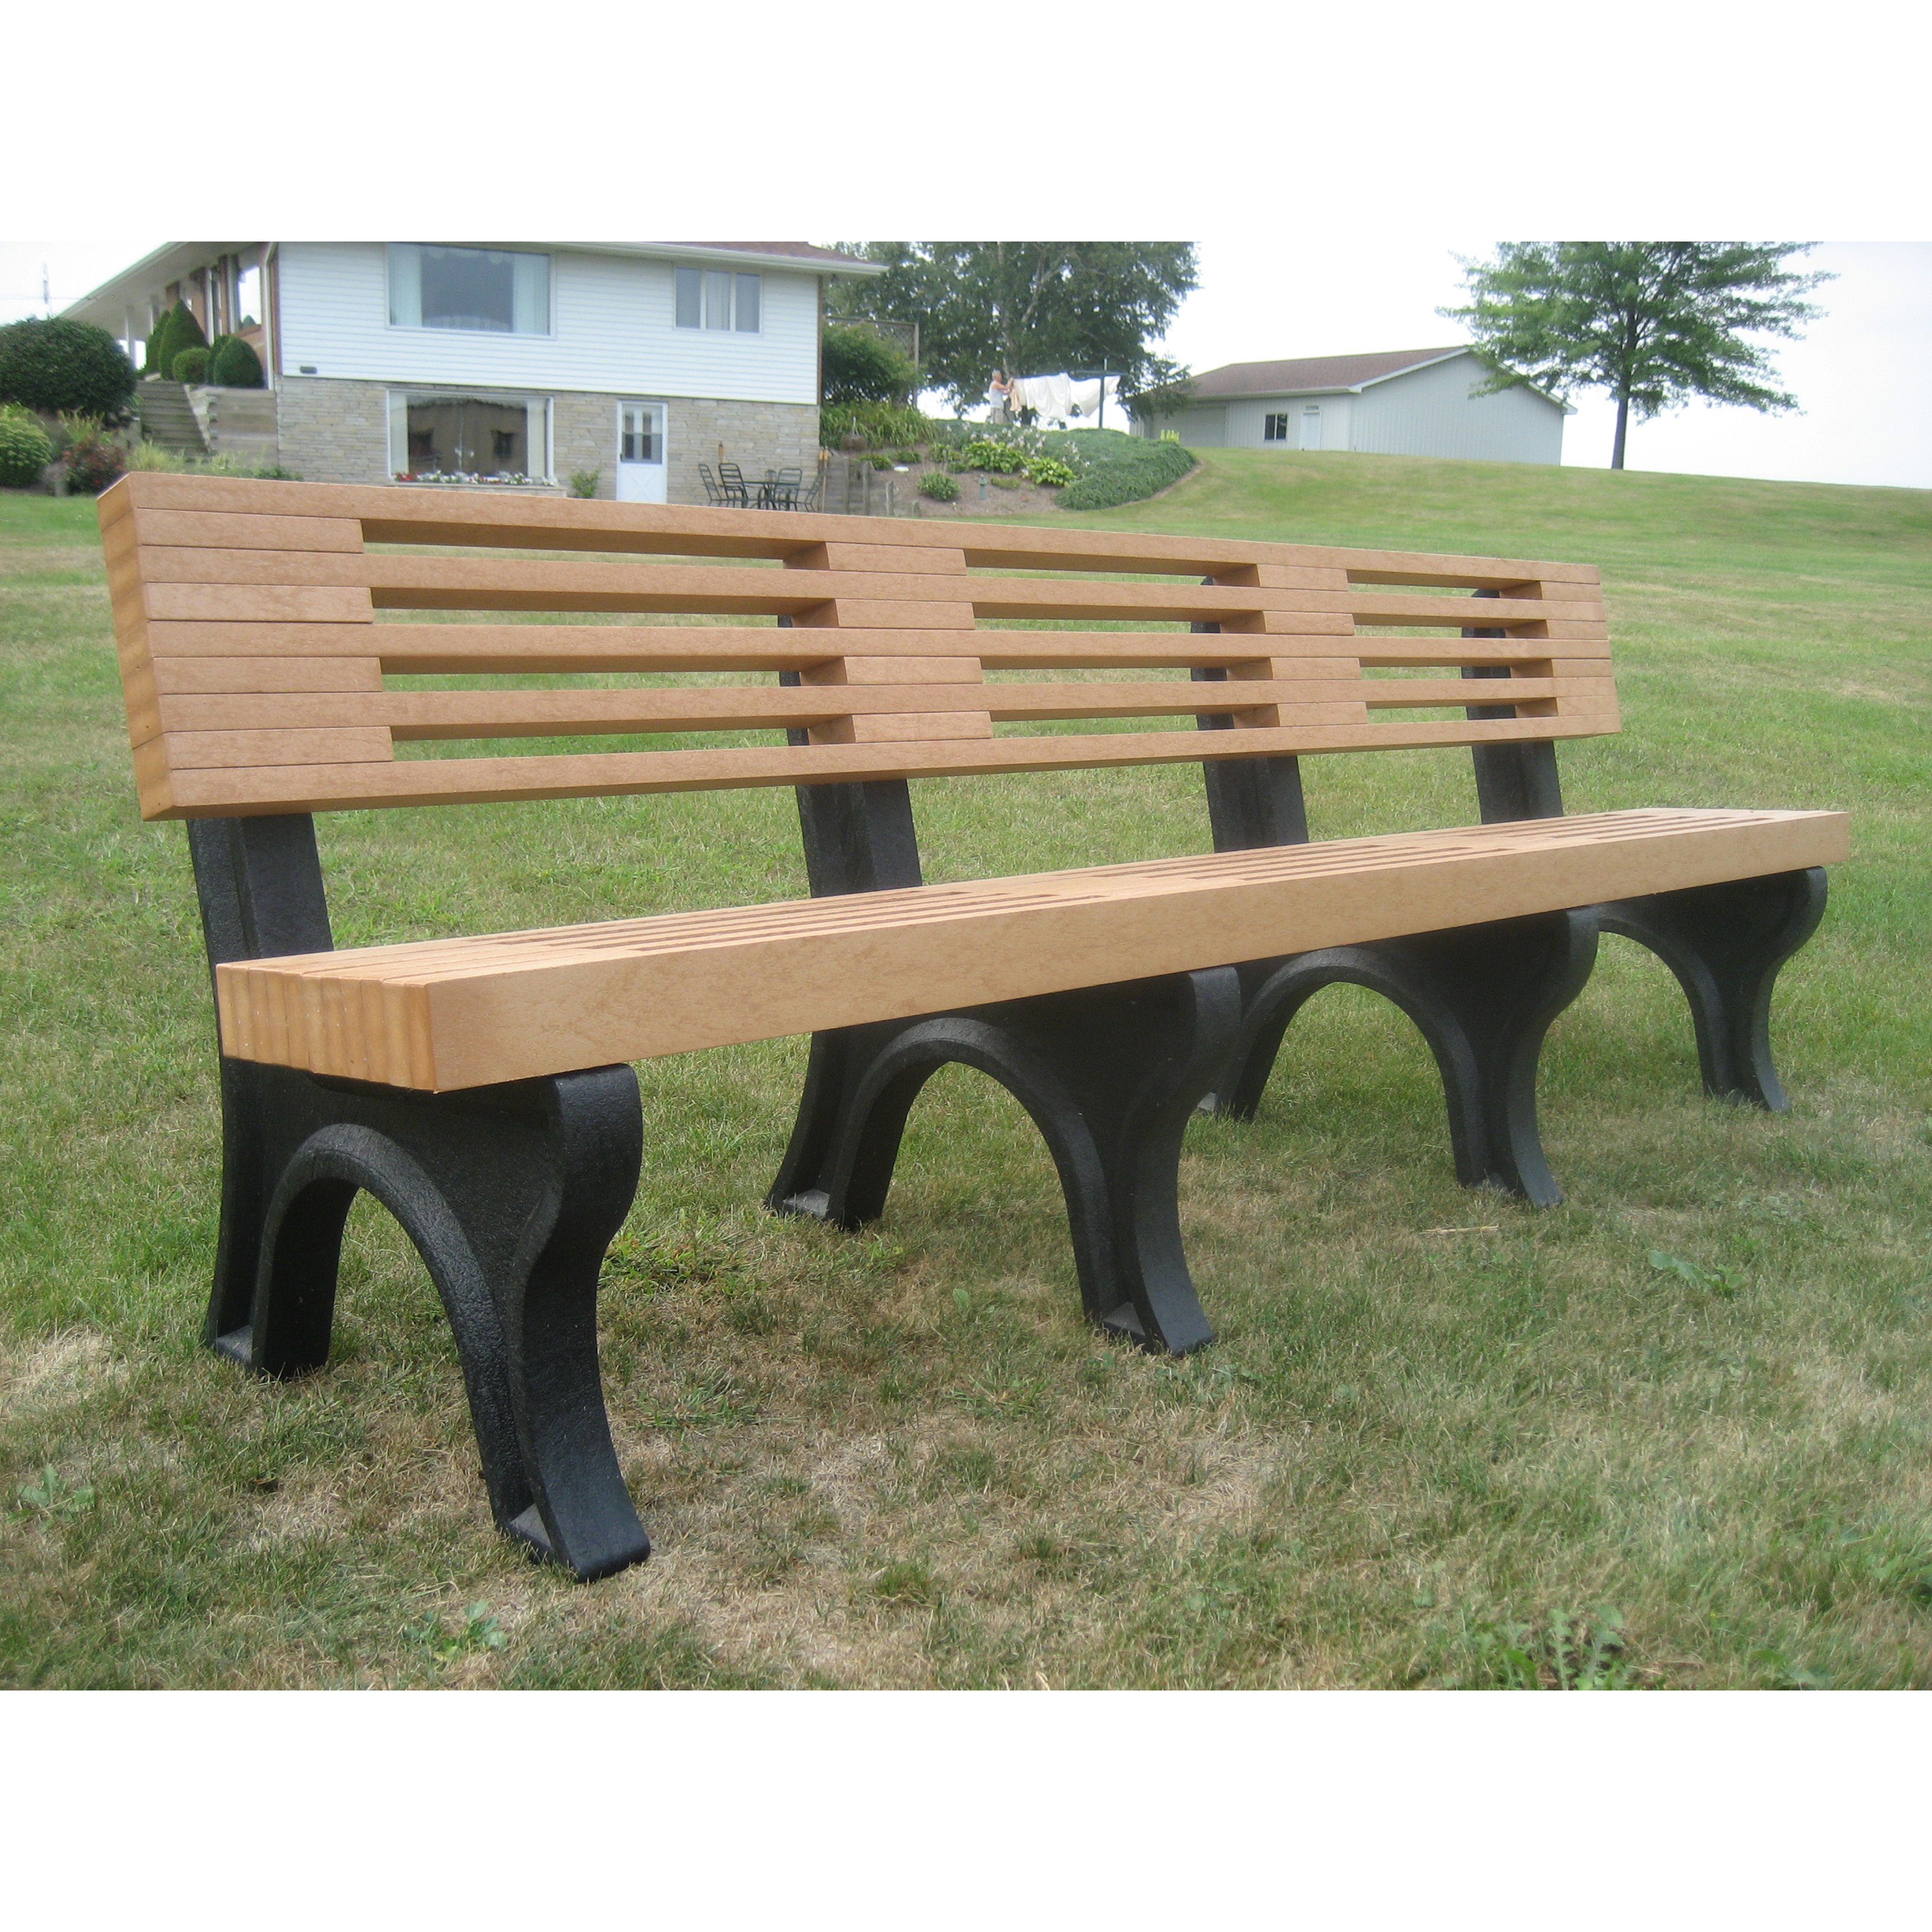 Polly Products Elite Recycled Plastic Backed Bench